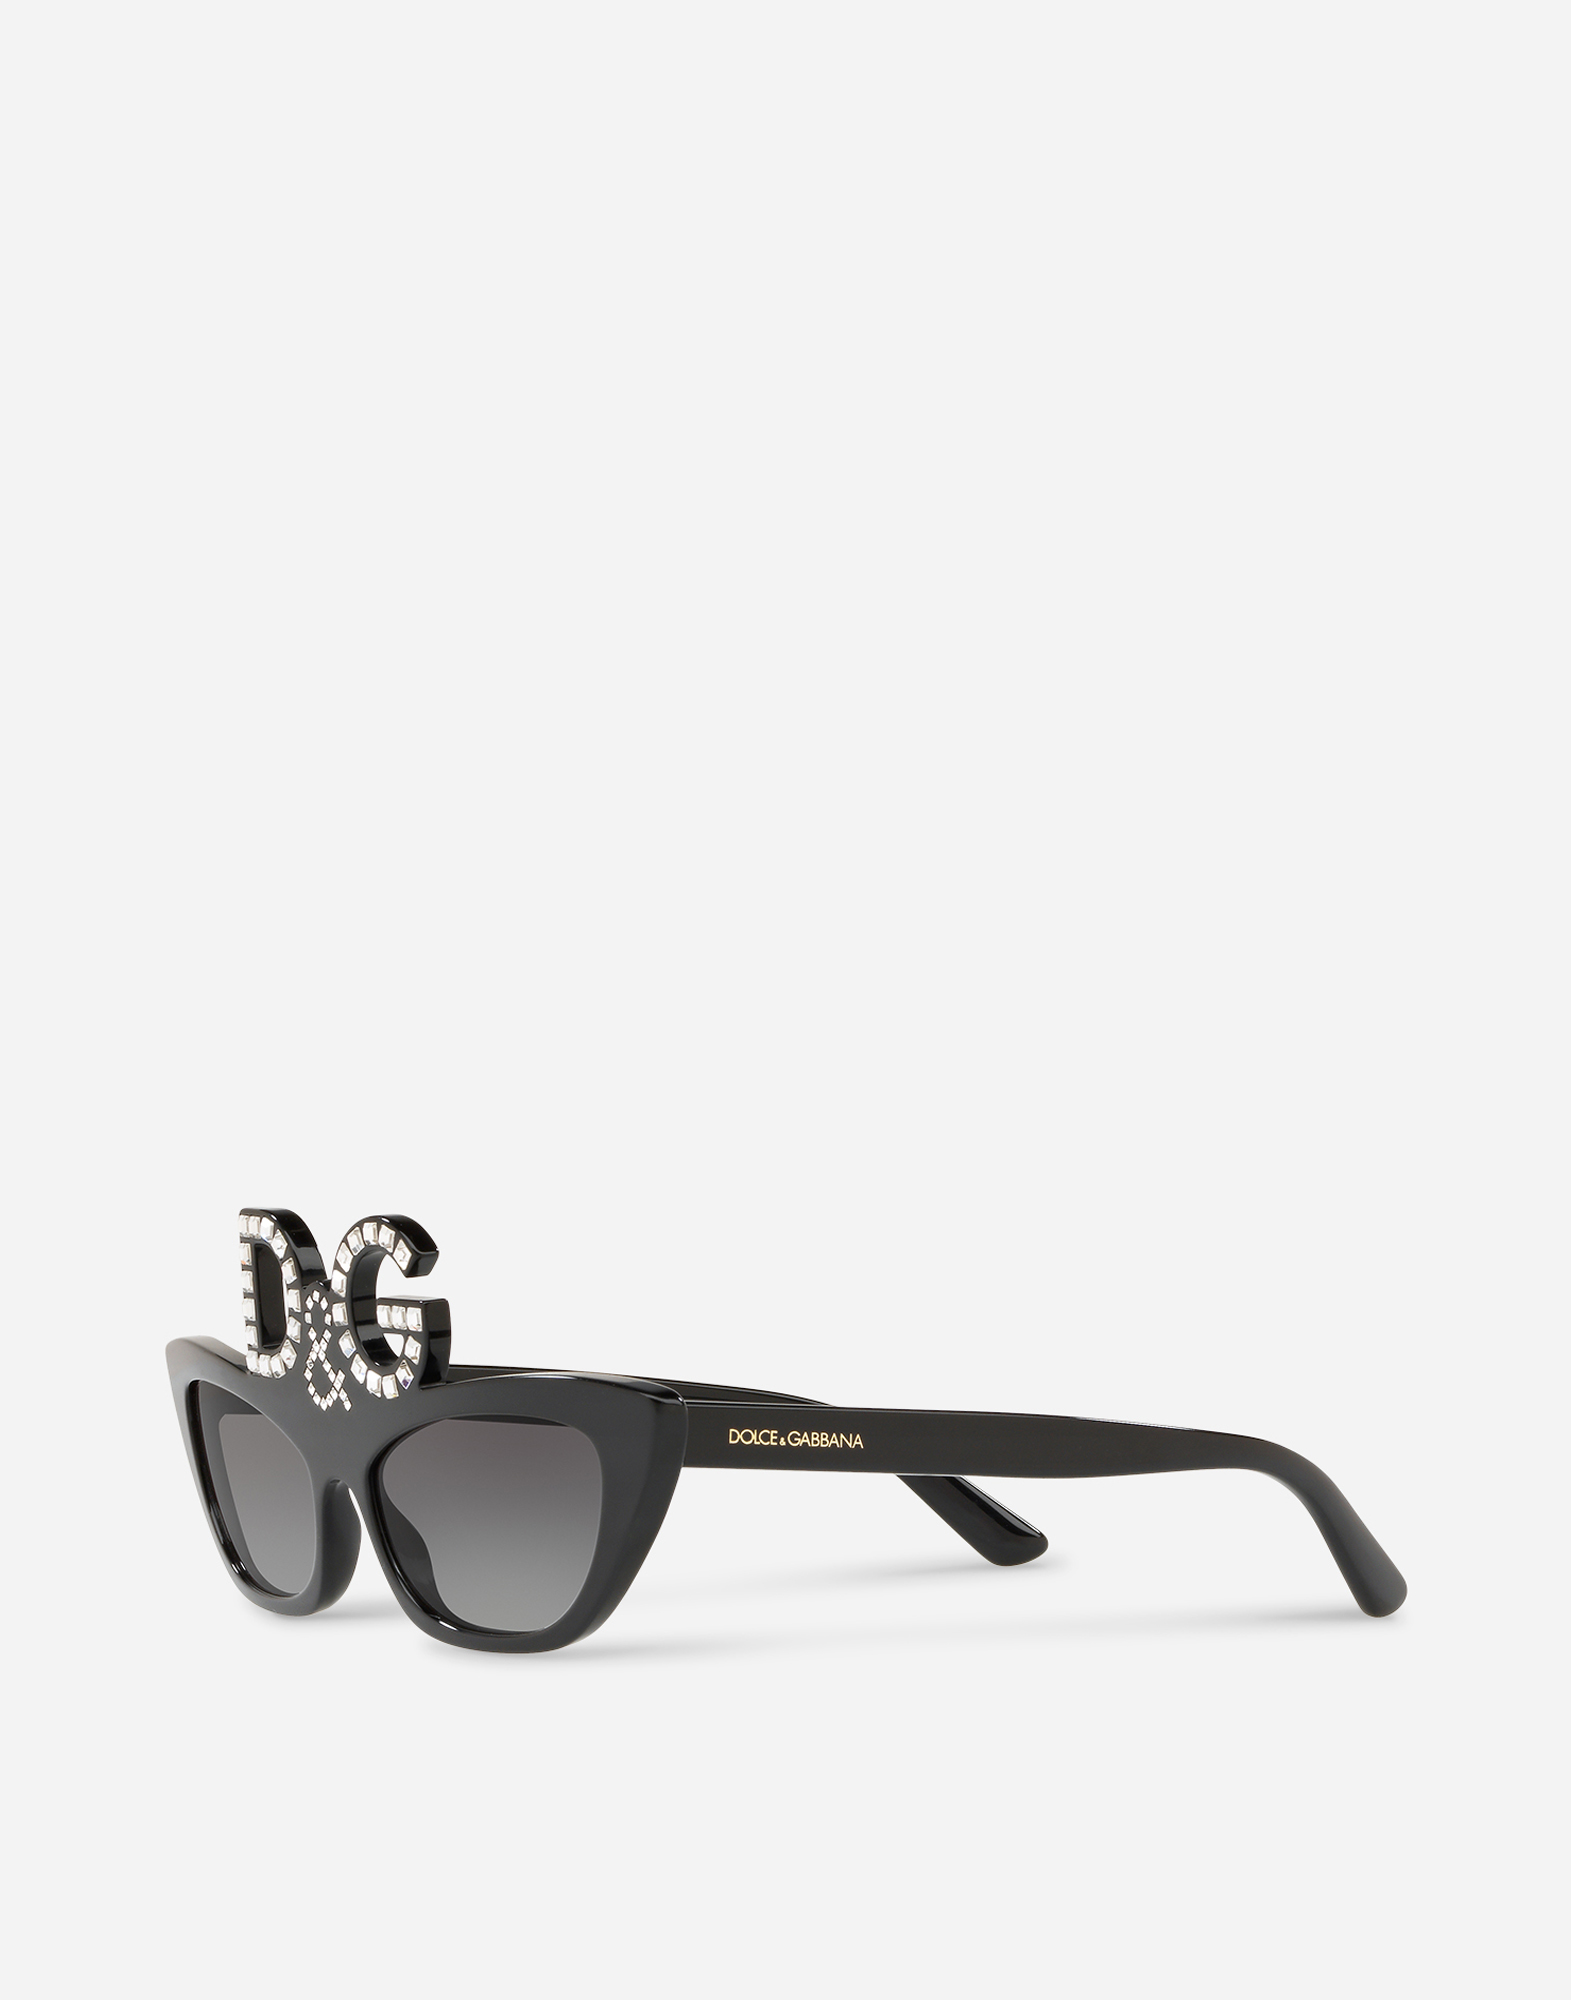 Dolce & Gabbana CAT-EYE SUNGLASSES EMBELLISHED BY CRYSTALS